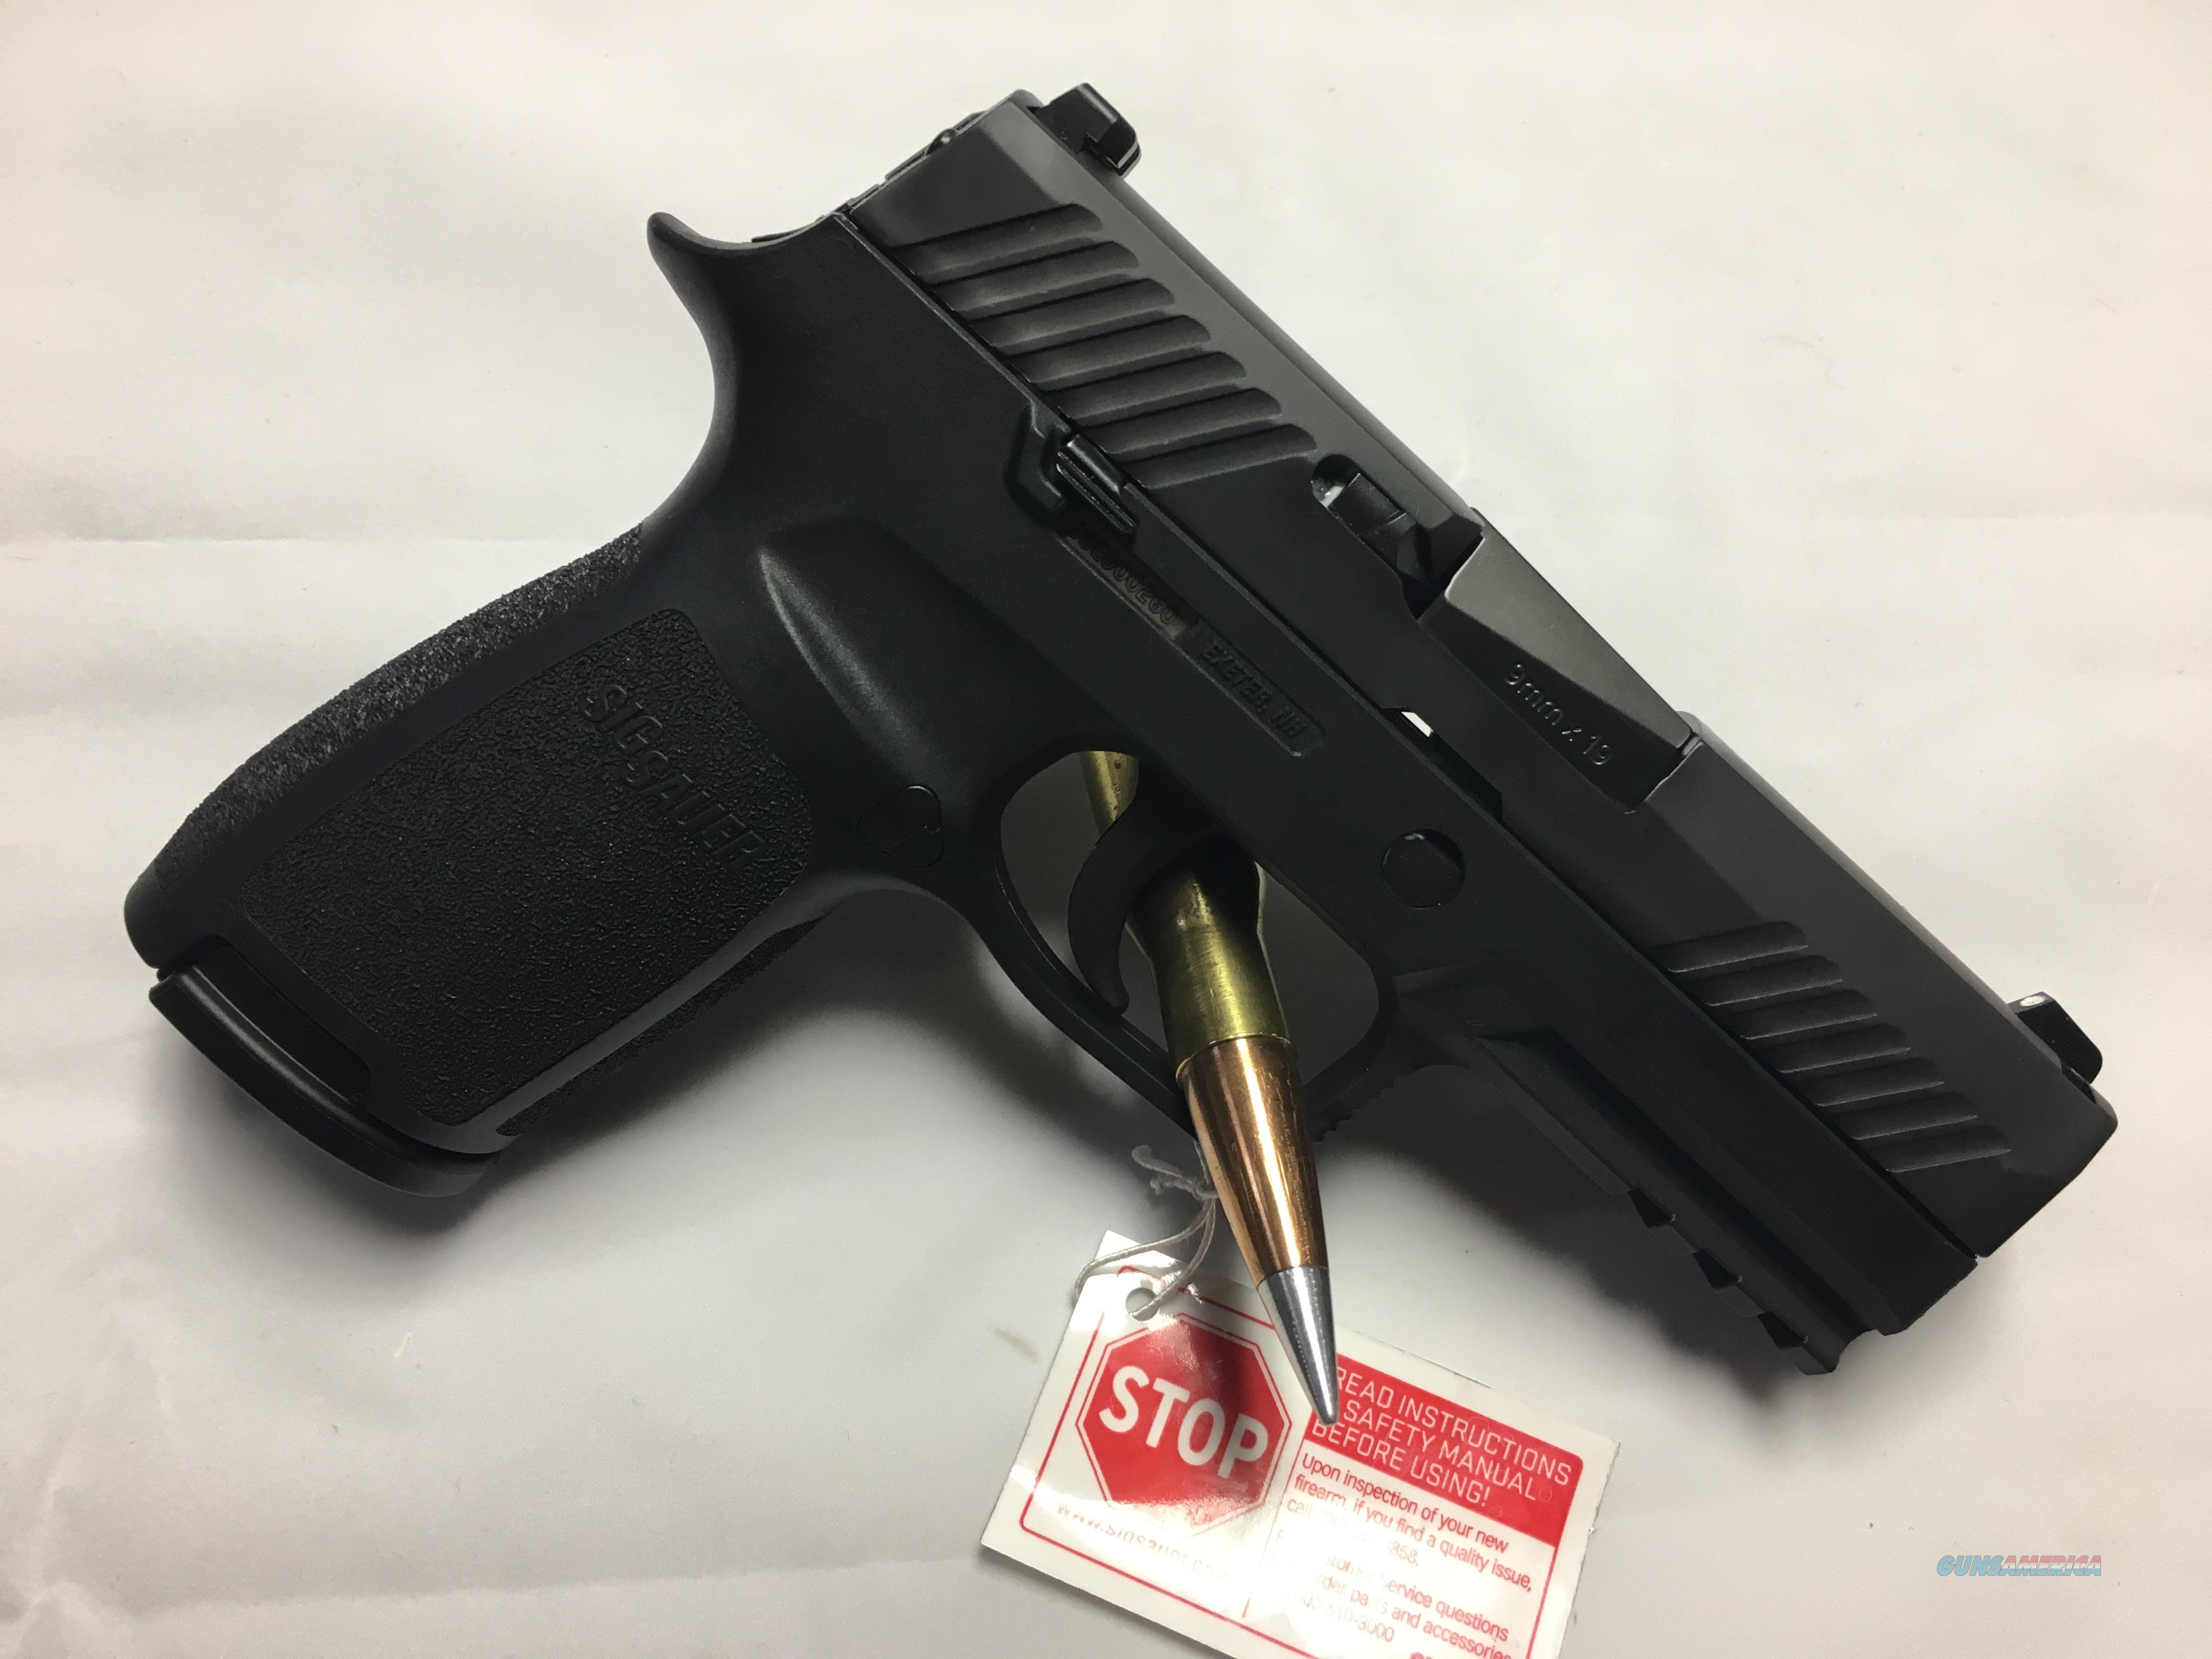 Sig Sauer P320 Carry 9mm  Guns > Pistols > Sig - Sauer/Sigarms Pistols > P320